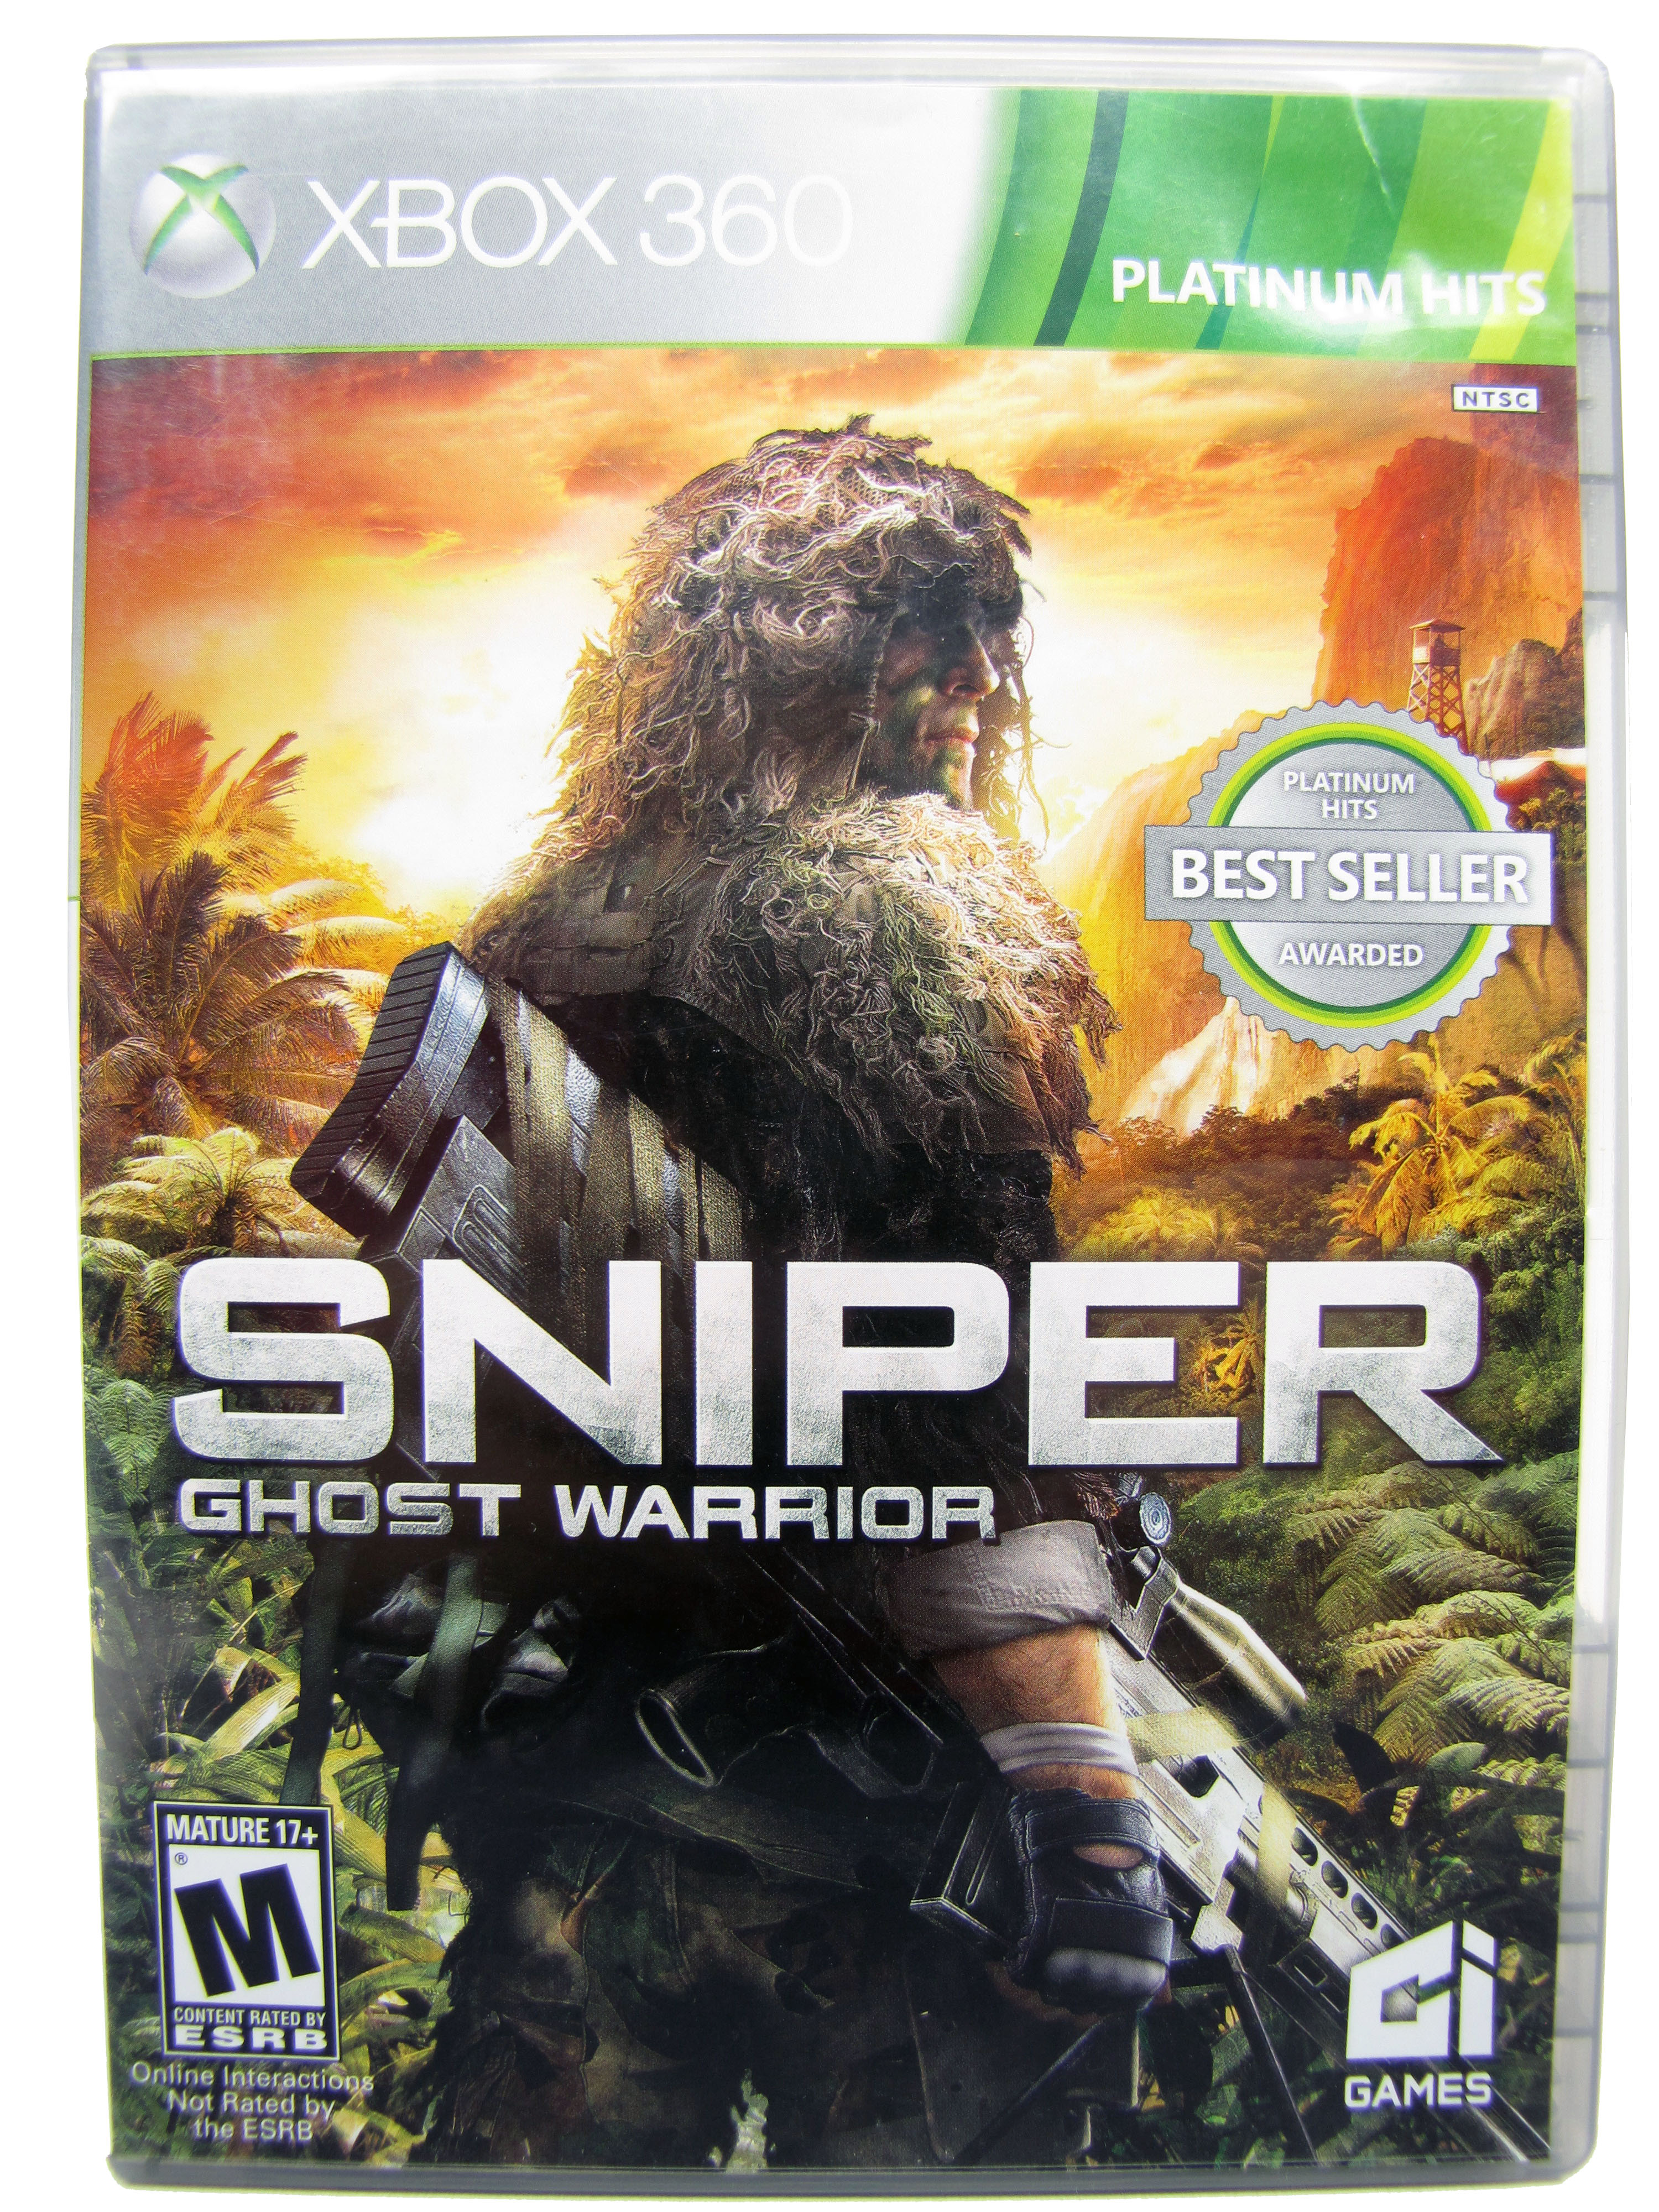 XBOX 360 Sniper: Ghost Warrior 2 Complete - 2013